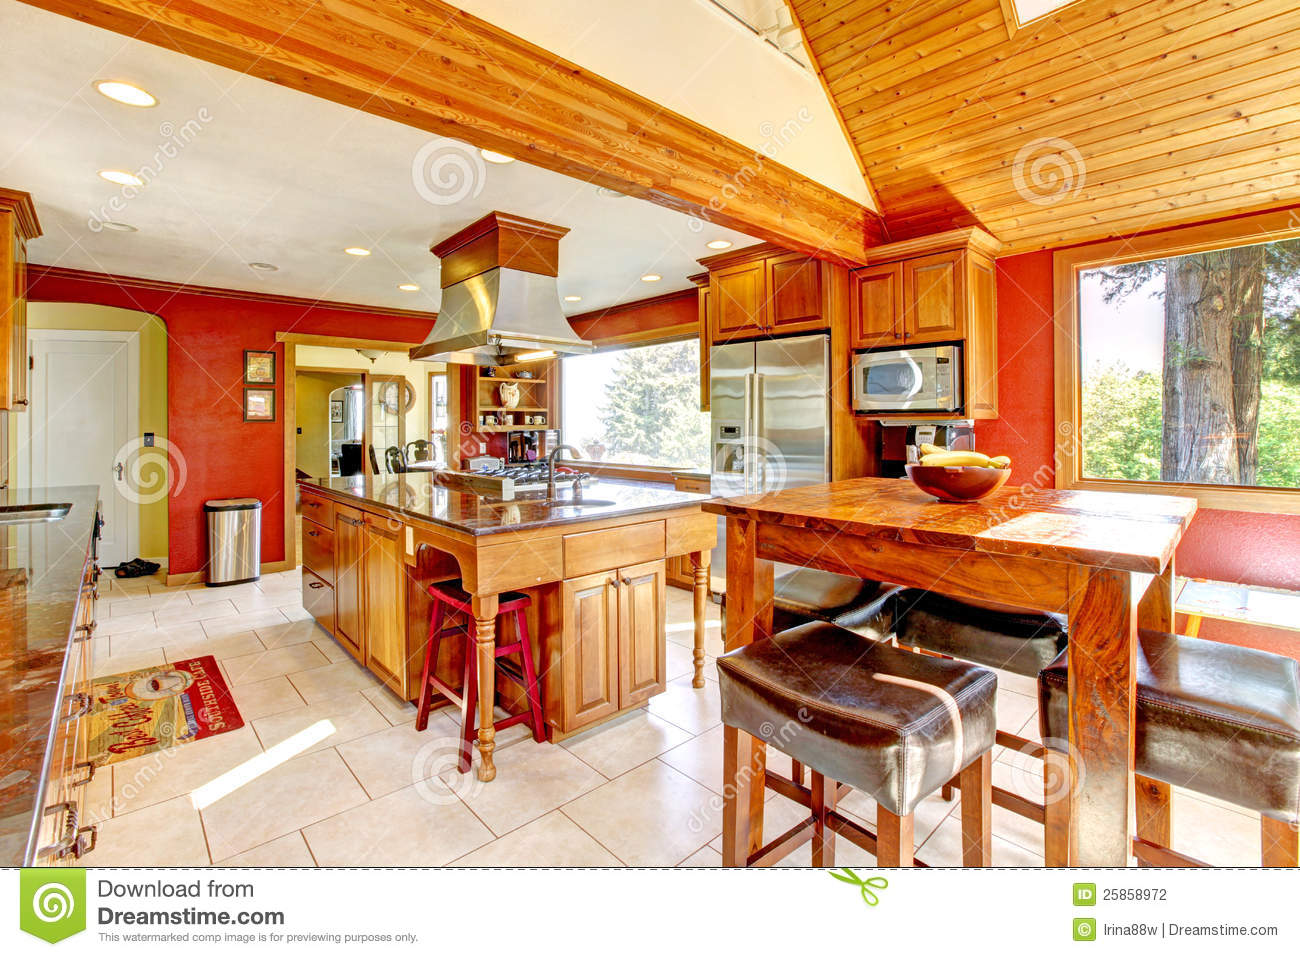 Large kitchen with red walls and wood ceiling stock for Large pictures for kitchen walls